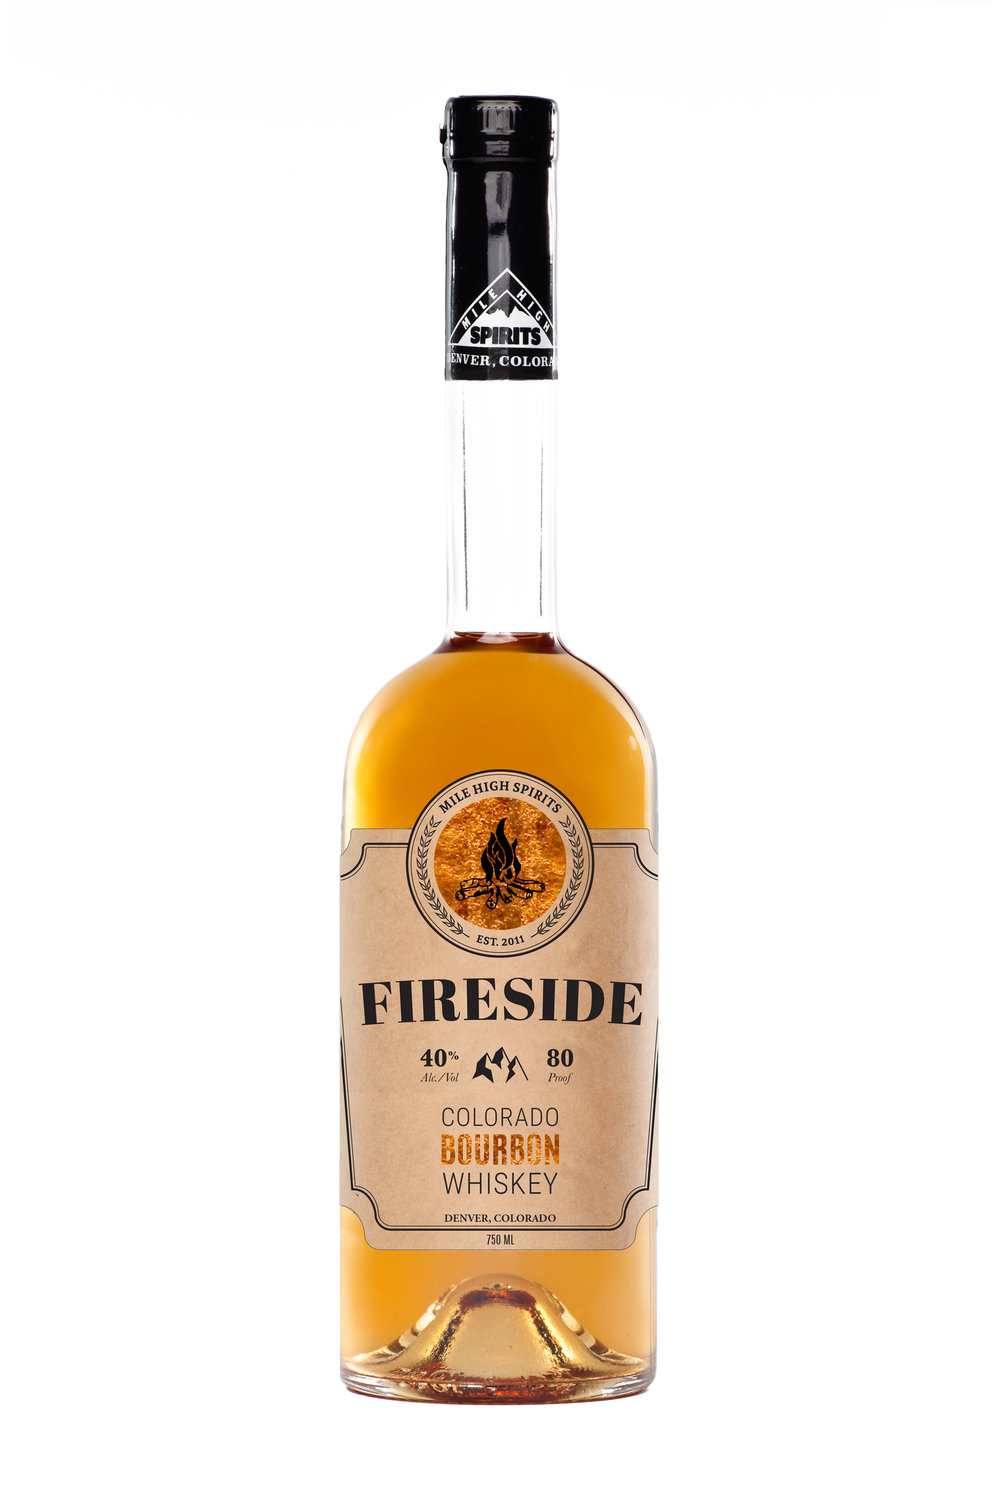 Fireside Bourbon Fireside is a full body robust Bourbon that we prefer sipped from a game-day flask, poured in a buddy's glass, or served fireside amongst good friends and old stories. Smooth, but robust from aging, every taste stays true to barrels of white oak and the promise of perfection in a Colorado Bourbon.